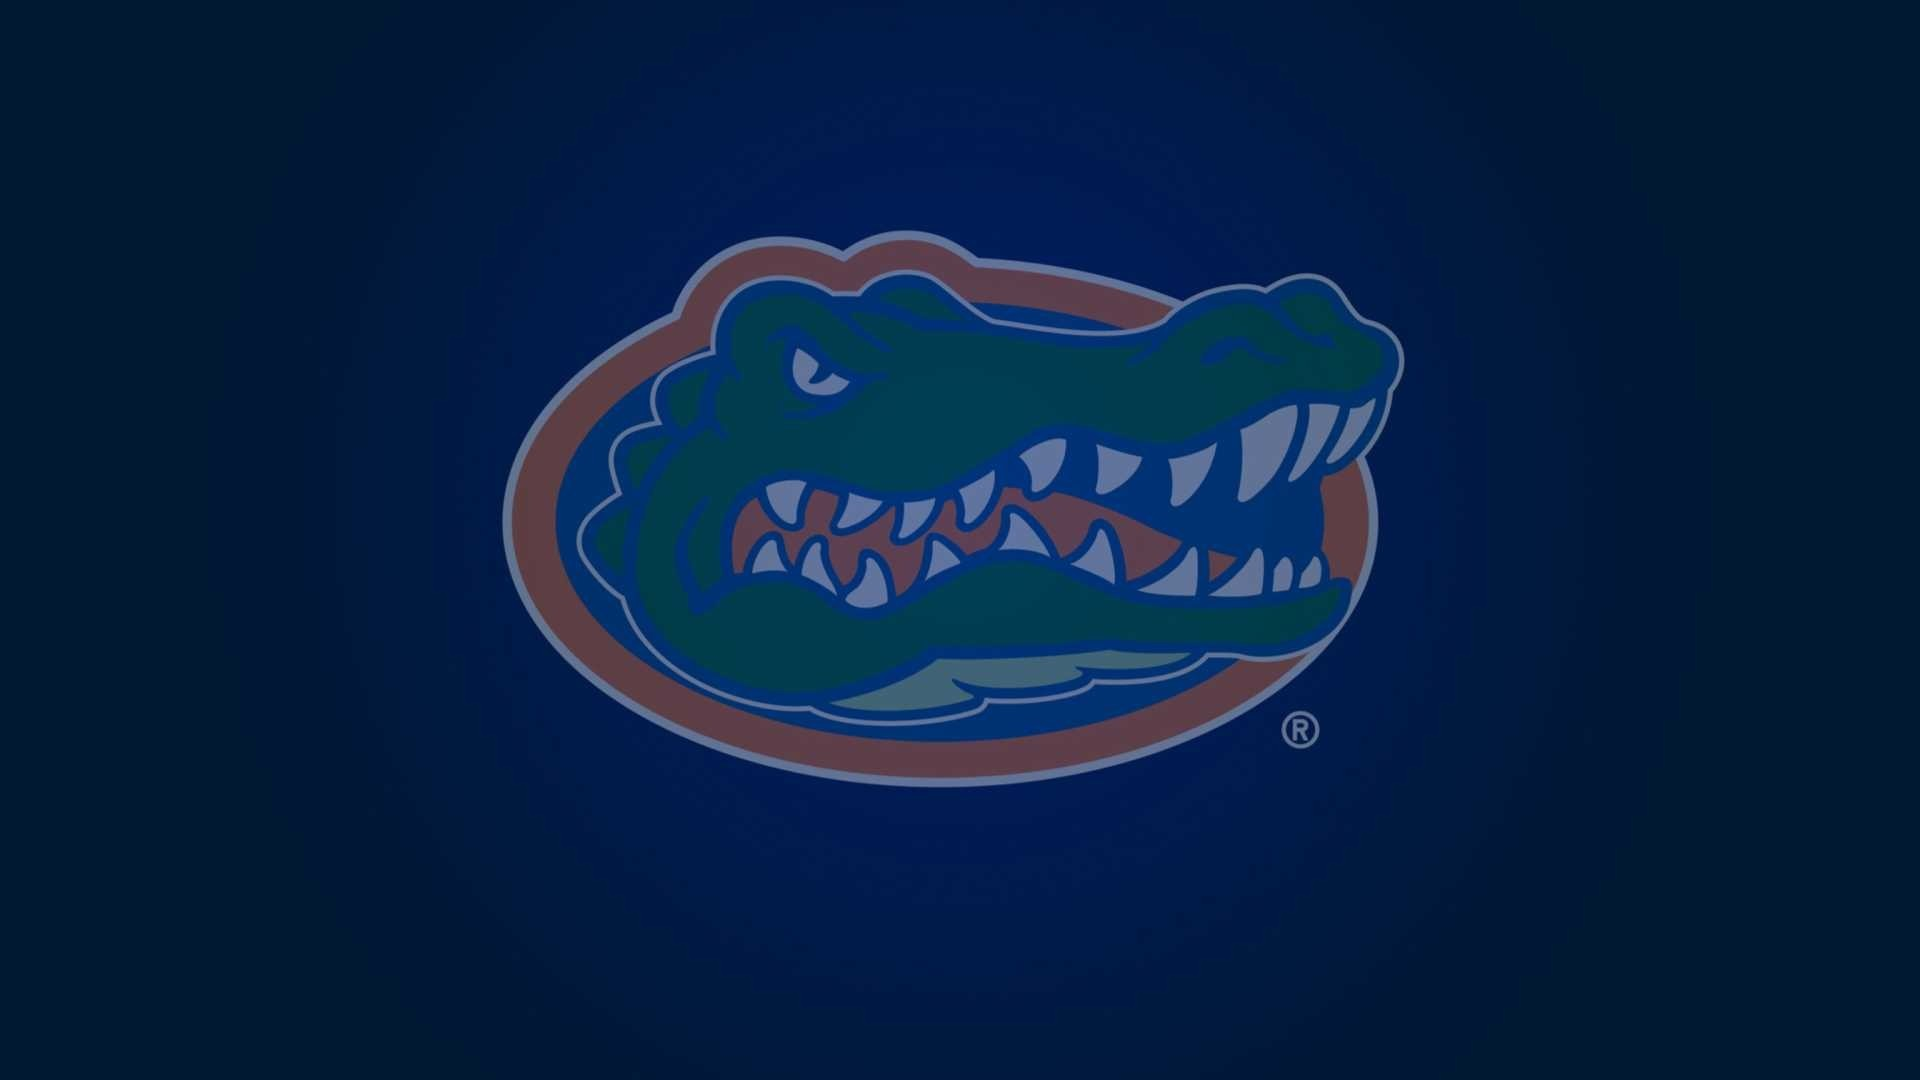 1920x1080  High Resolution For University Of Florida Gators Wallpaper Hd Pics  Mobile